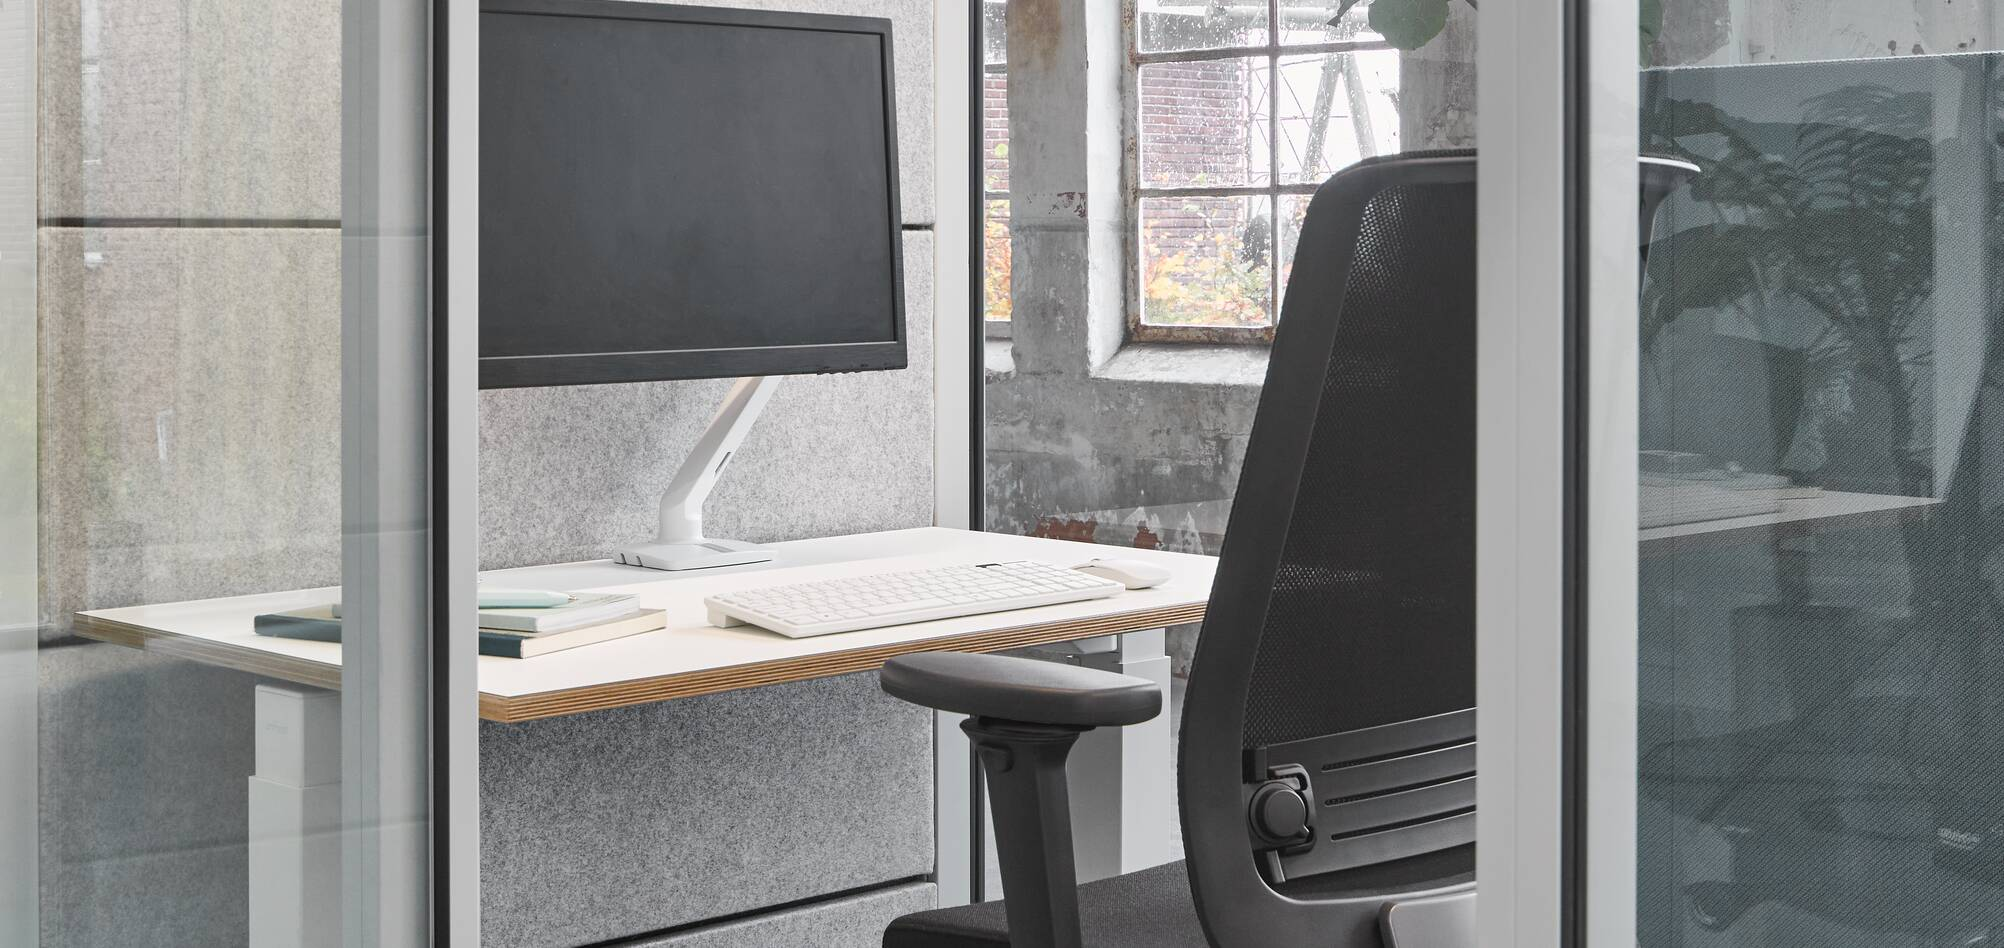 Ahrend inside of Qabin with Ease office chair and desk in a Hybrid working community setting